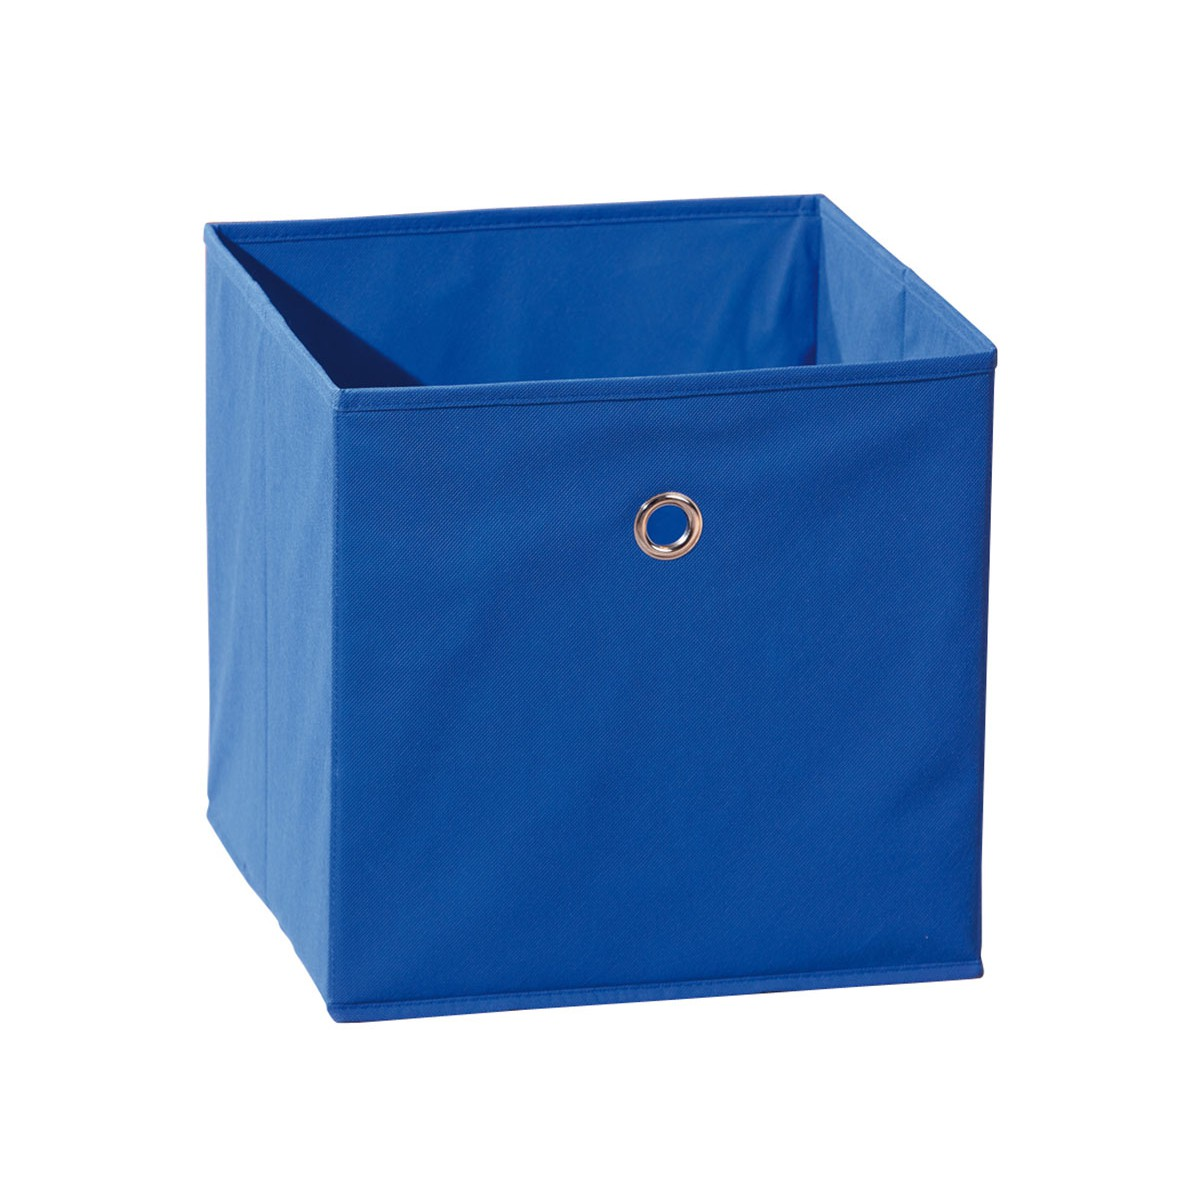 altobuy squareboxx bac de rangement bleu neuf ebay. Black Bedroom Furniture Sets. Home Design Ideas